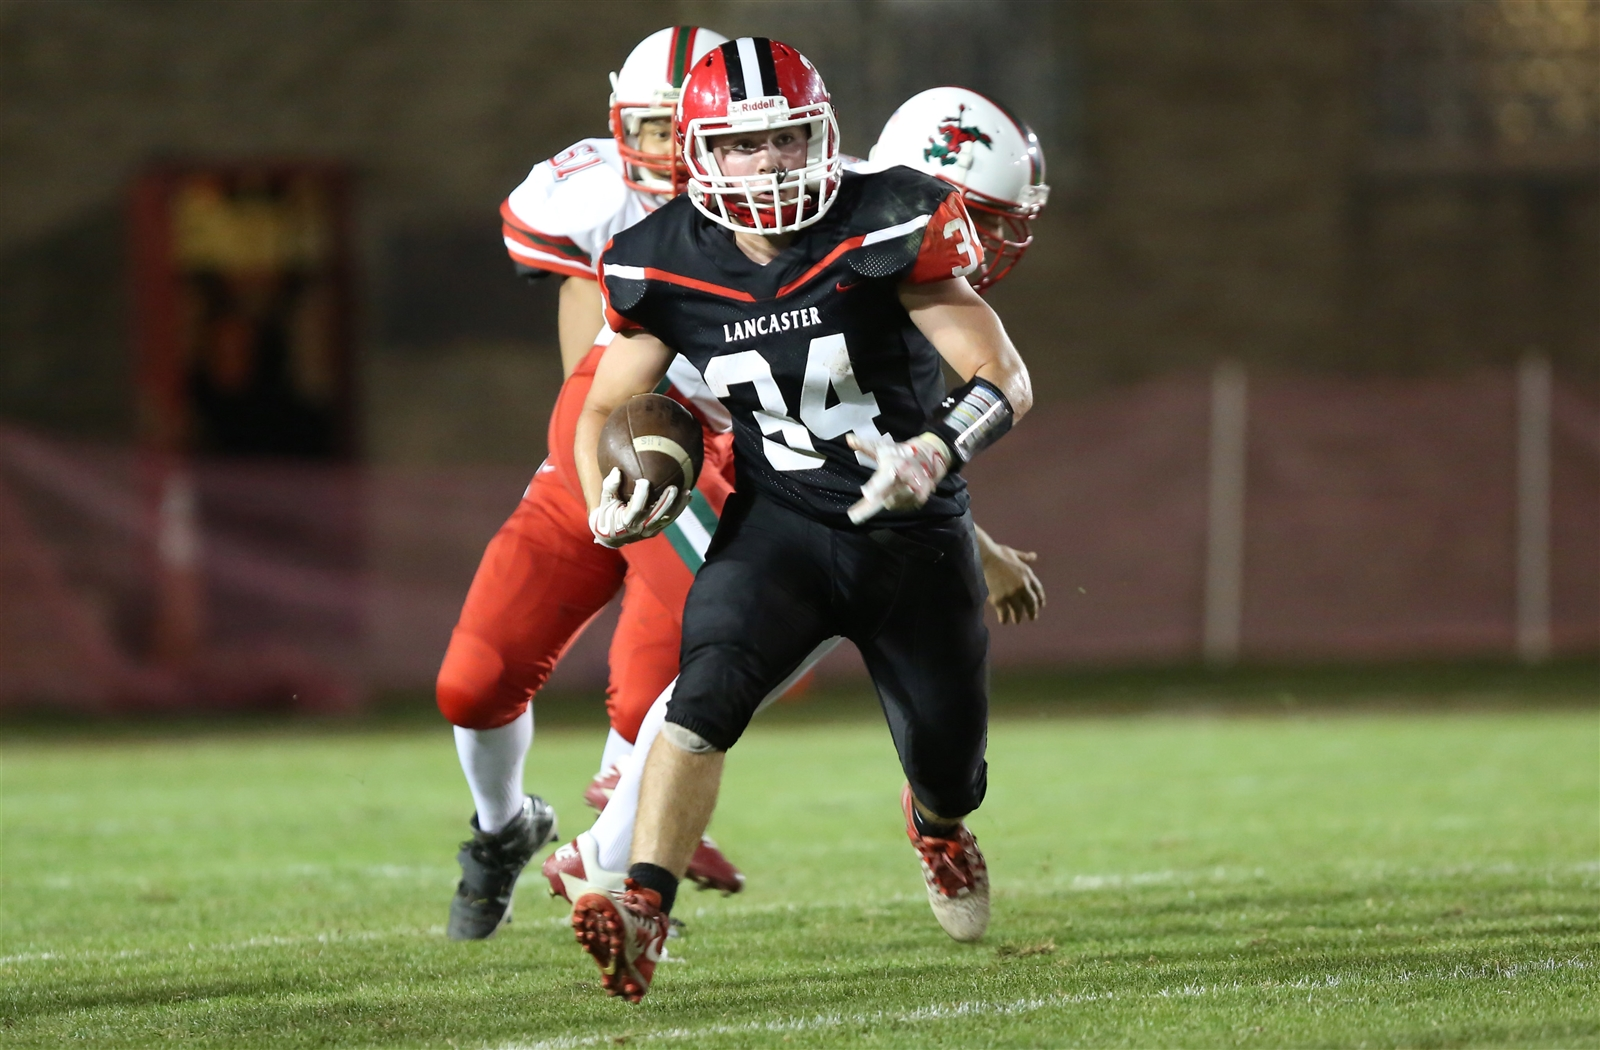 Lancaster defeated Jamestown, 56-14, to win its home opener on Friday night. Legends quarterback Ryan Mansell had three touchdowns passes, while LG Castillo had two receiving touchdowns in the win.